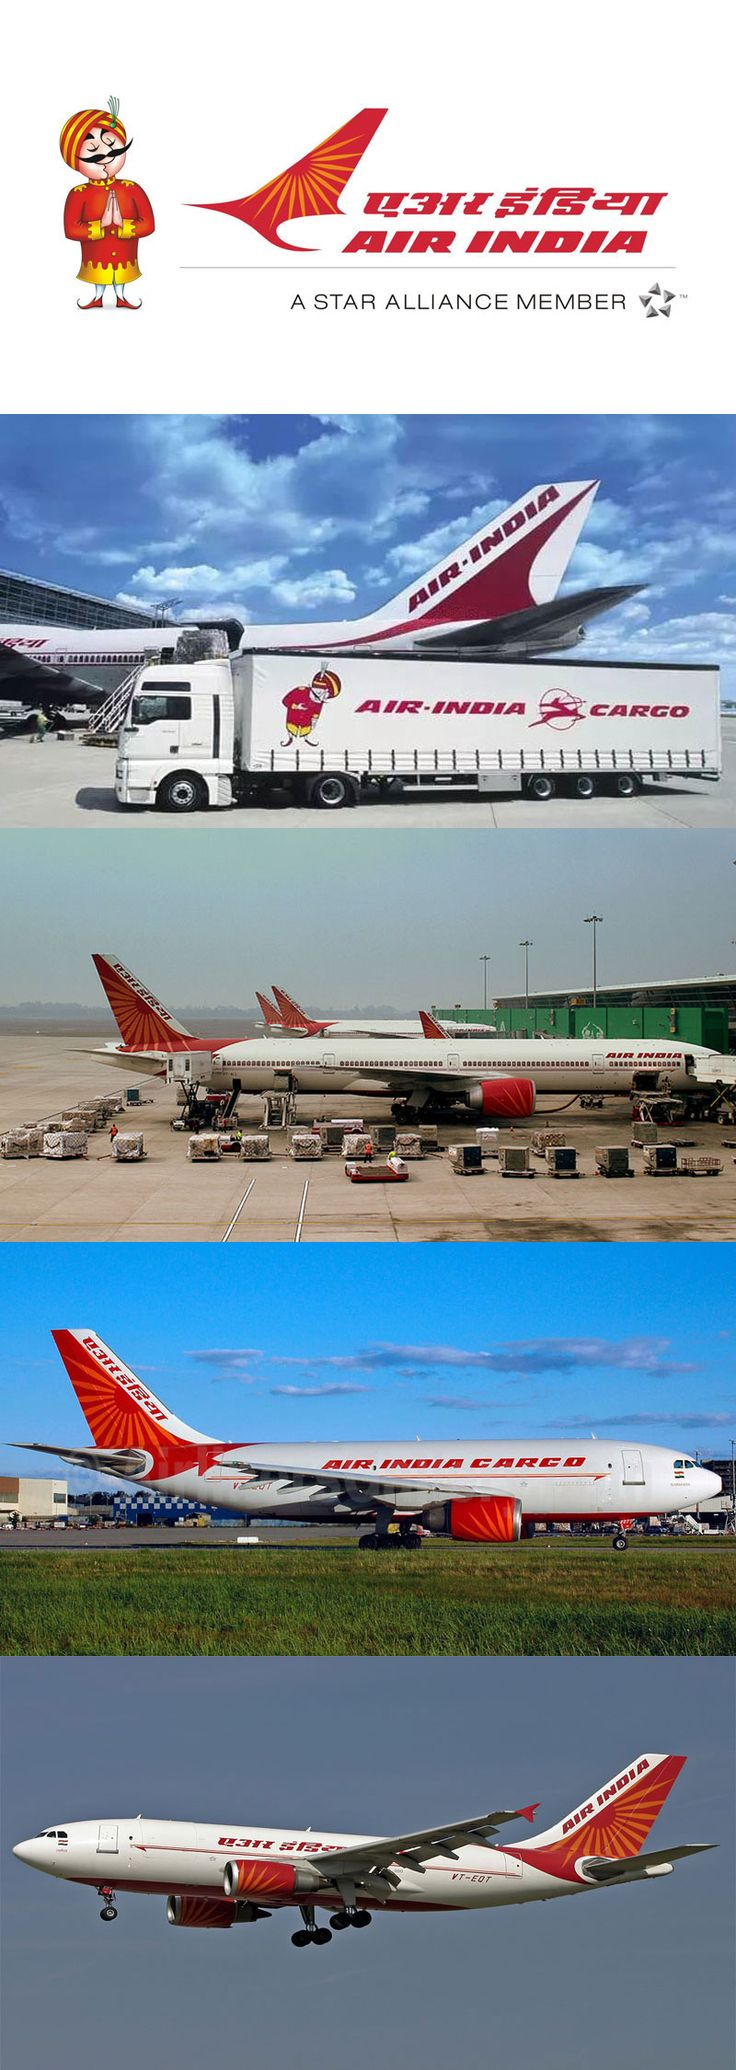 Air India, the most effective source working for Cargo business #AirIndia #Cargobusiness #ParcelstoIndia #CargoToIndia https://www.parcelstoindia.co.uk/blog/air-india-effective-source-working-cargo-business/